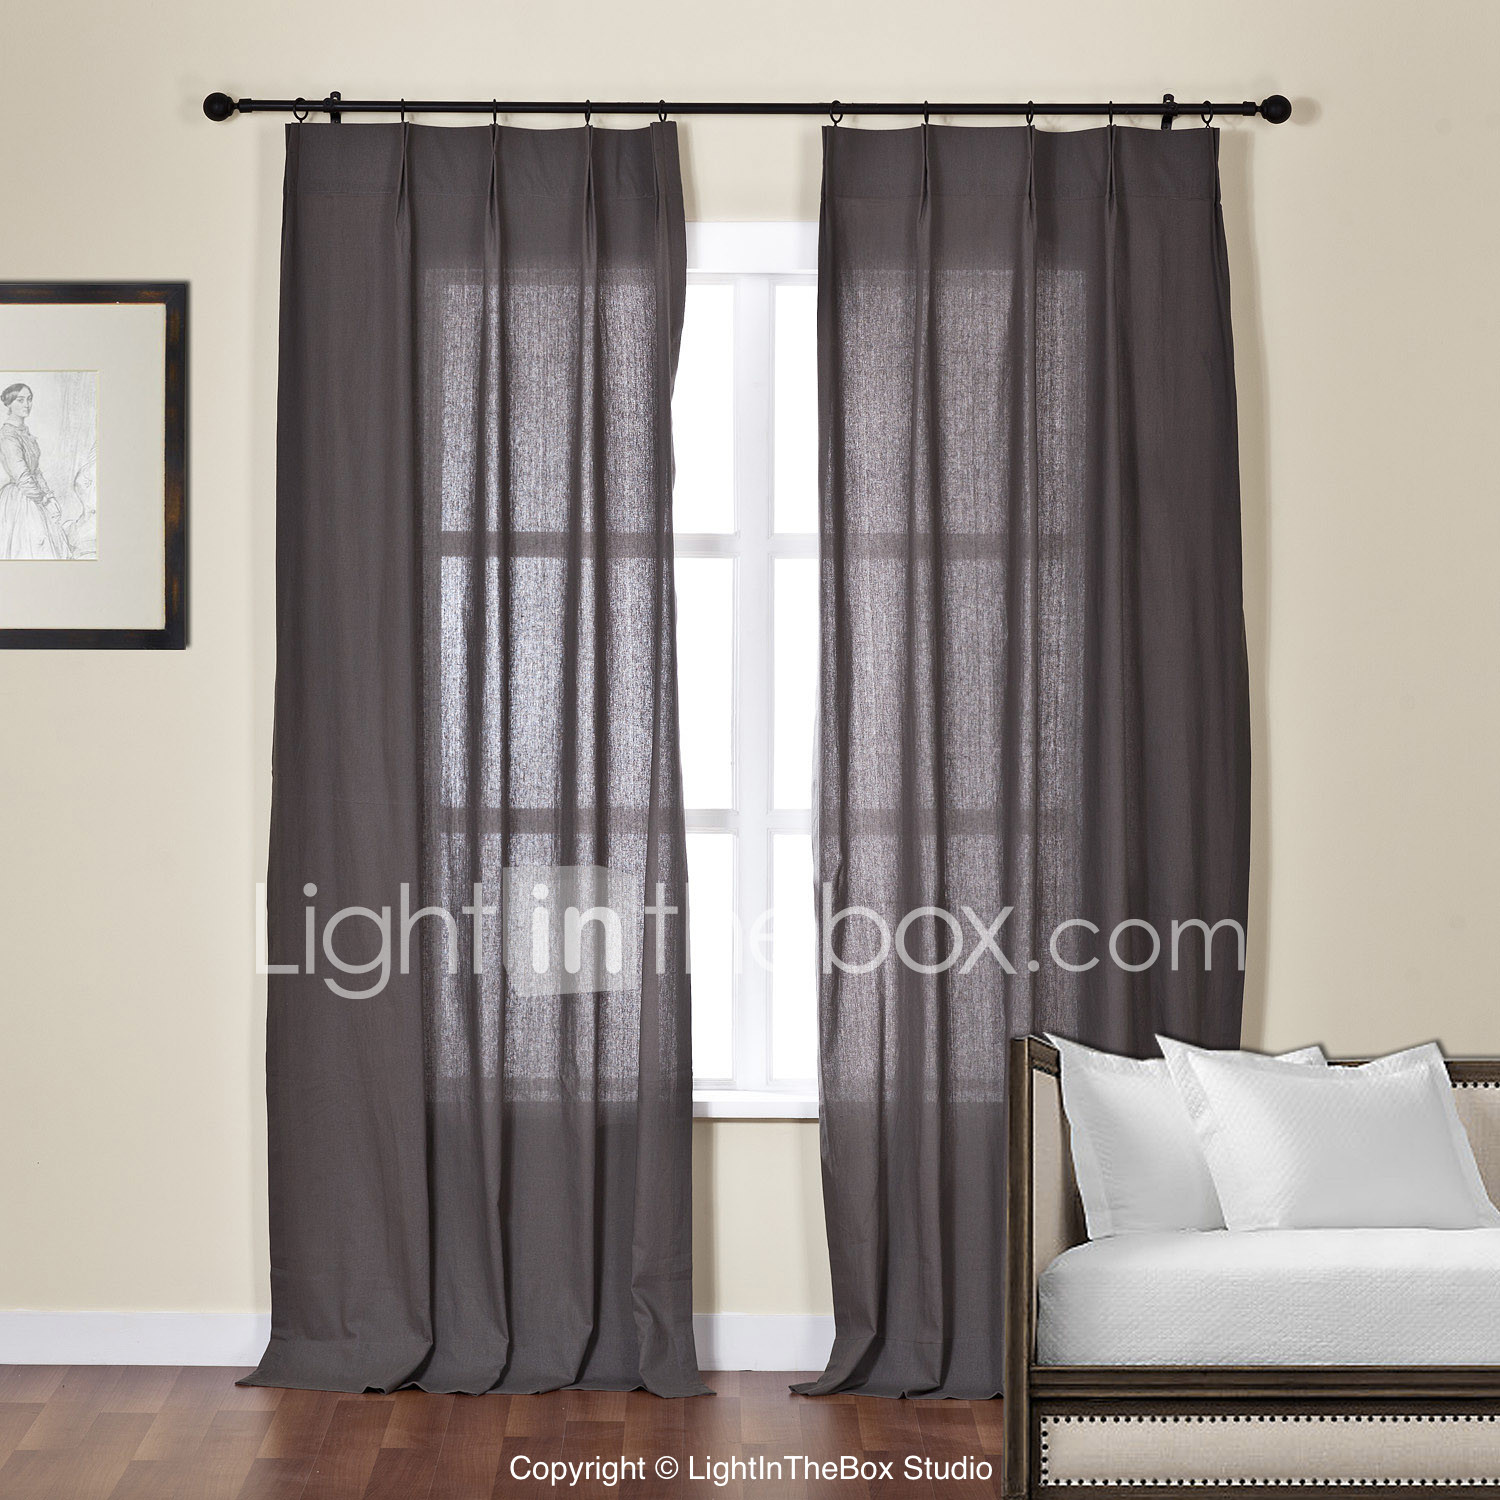 Sheer Curtains Living Room Two Panels Curtain Modern Solid Living Room Linen Cotton Blend